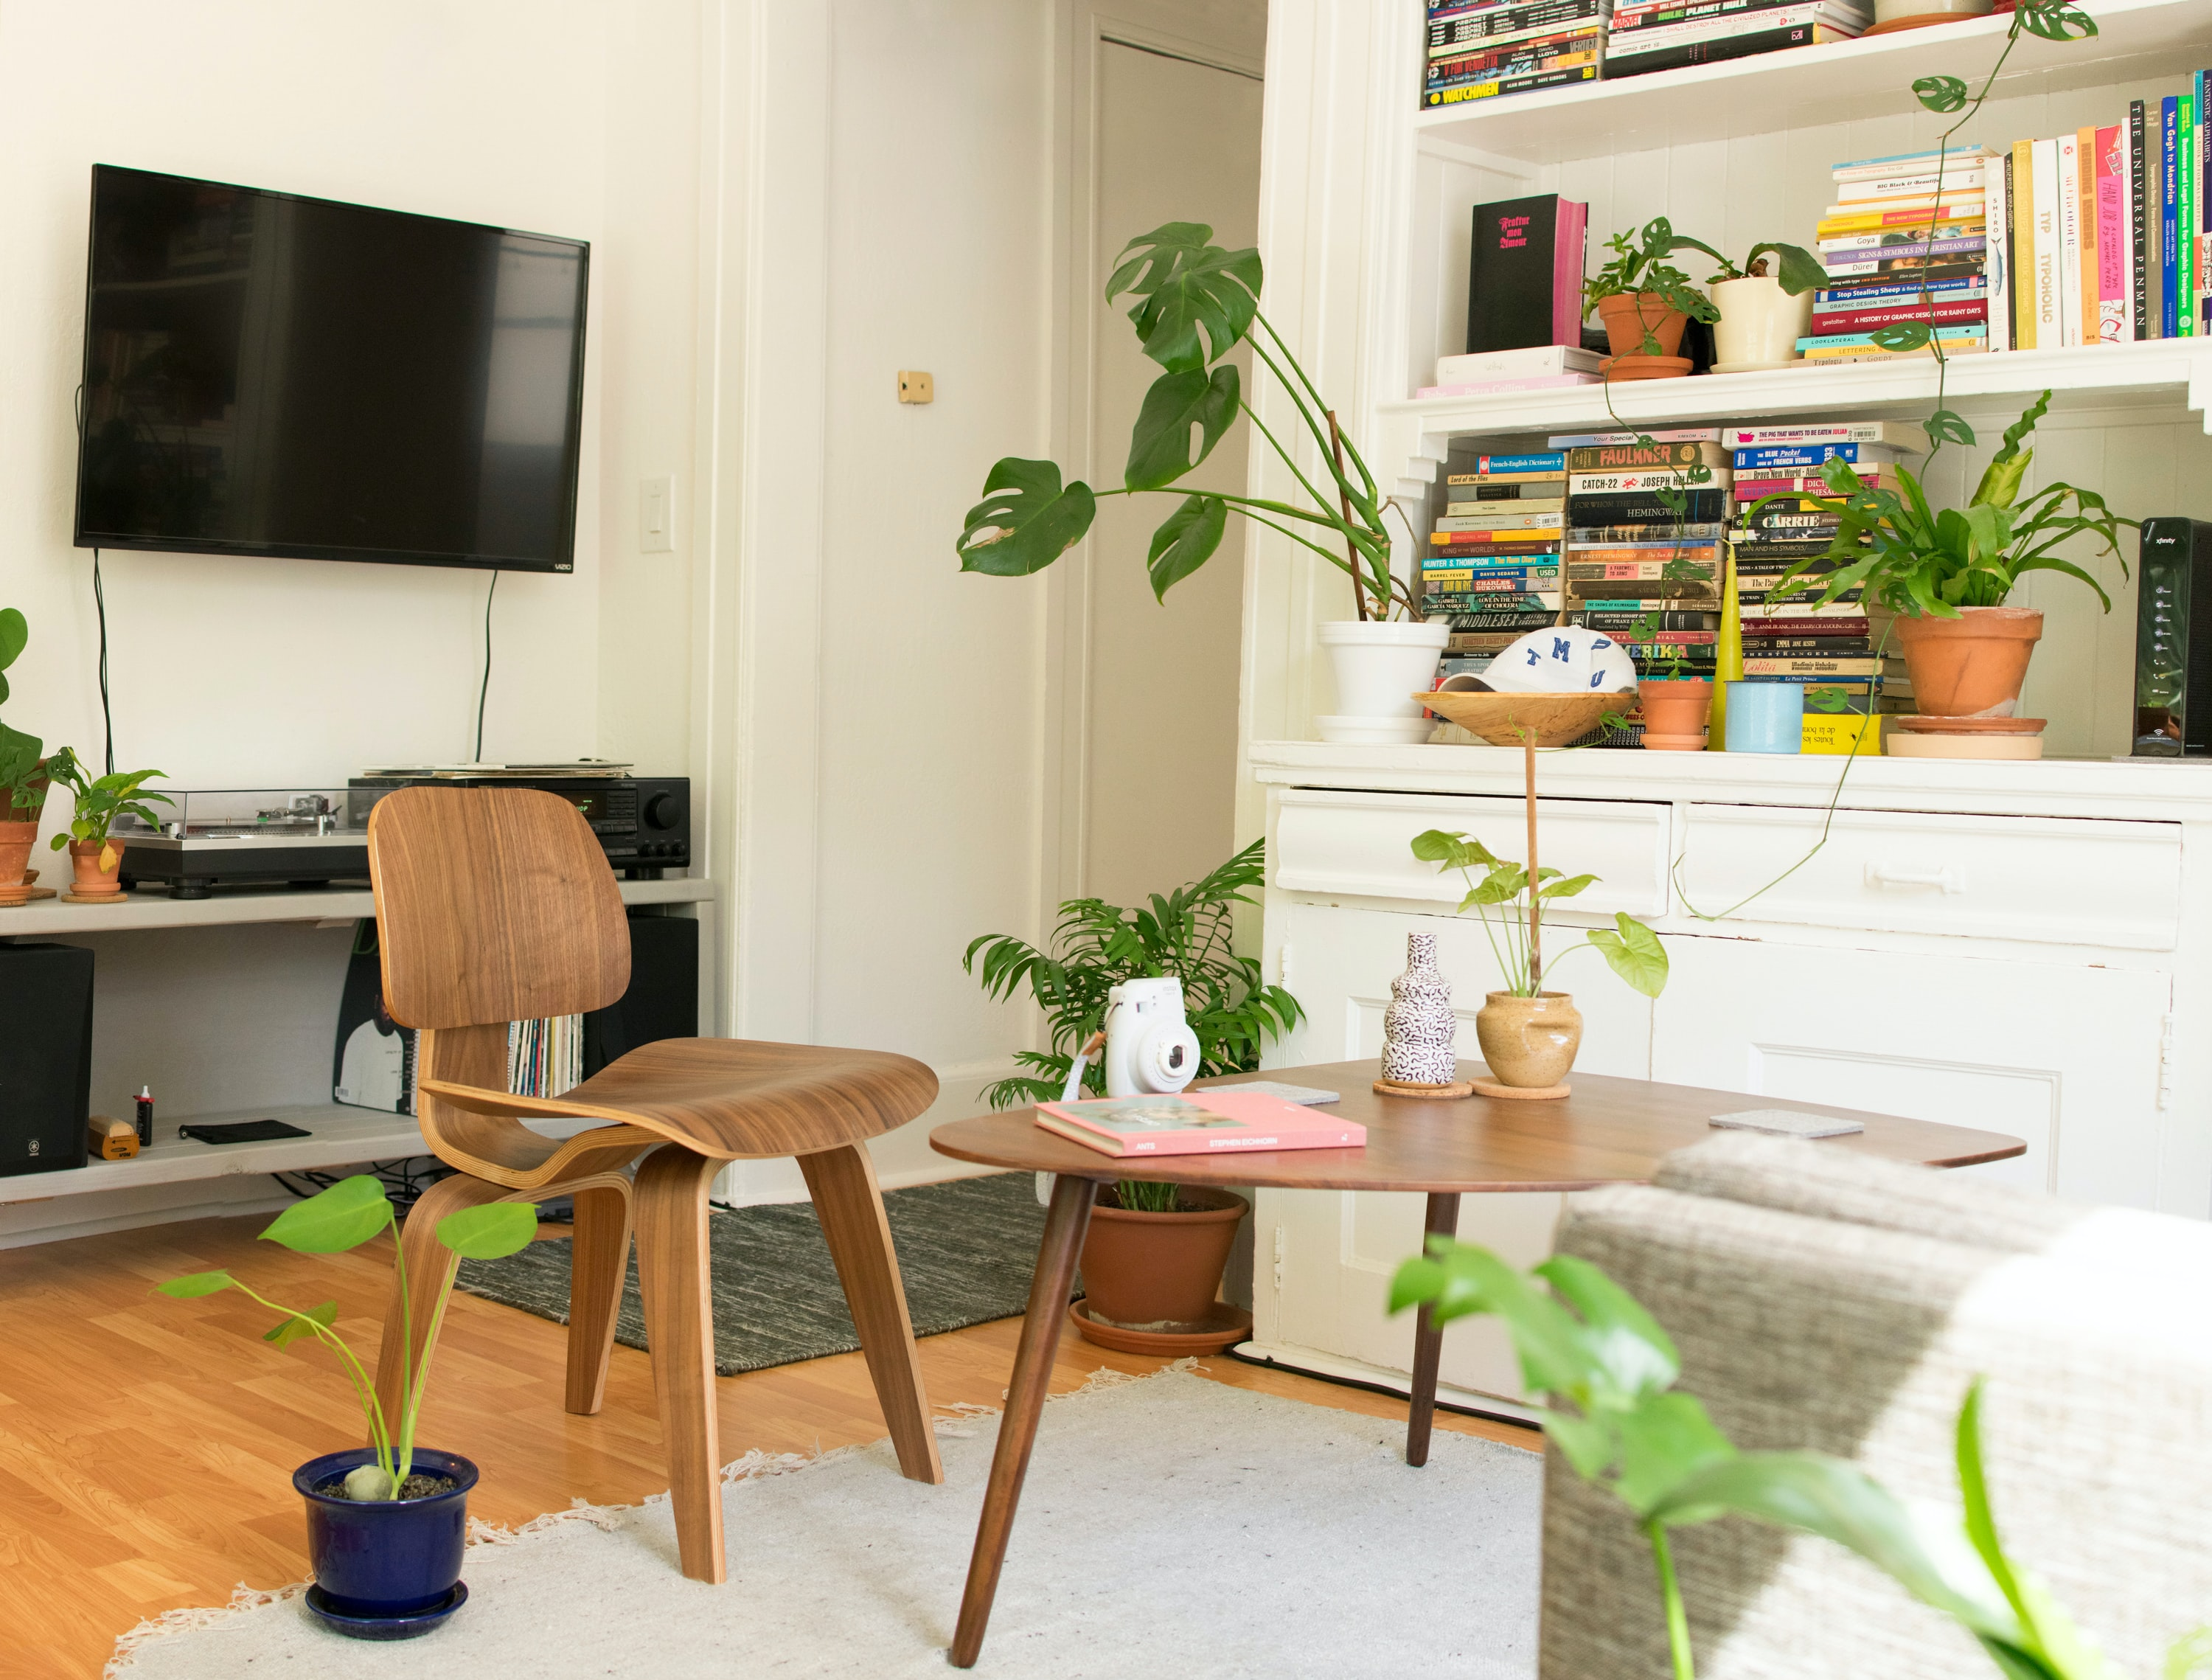 Modern living room with wooden furniture, plants on the floor, a tv on the wall, and bookshelves in the background